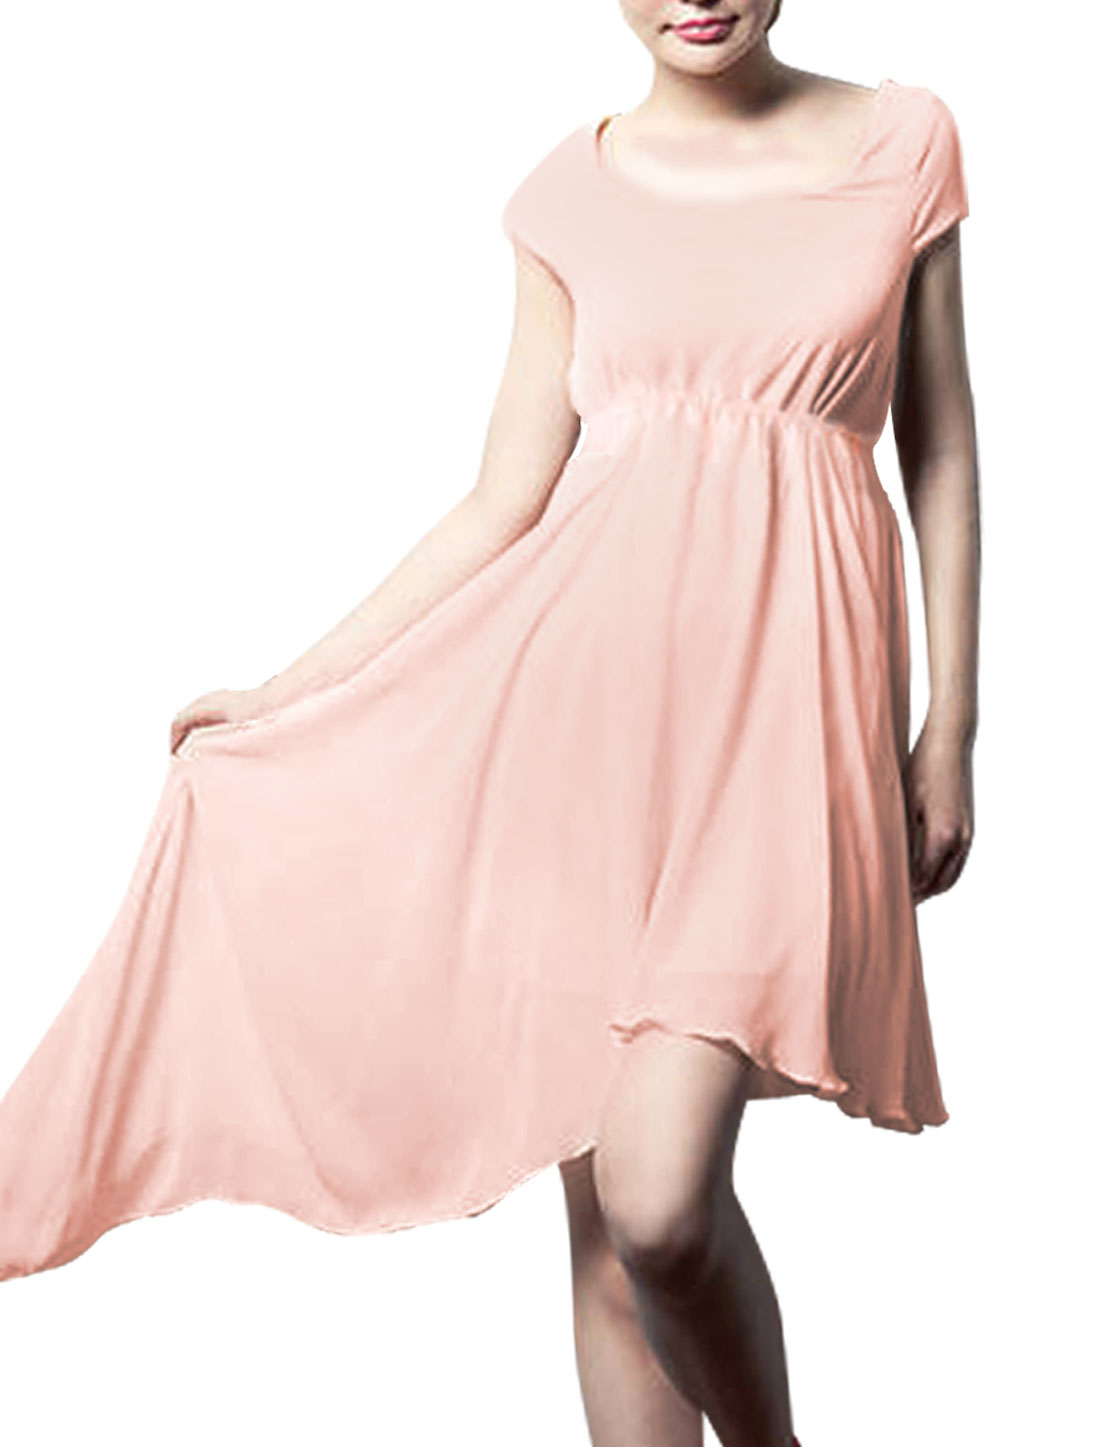 Lady Stretchy Waist Semi-sheer Irregular Hem Light Salmon Pink Dress XS